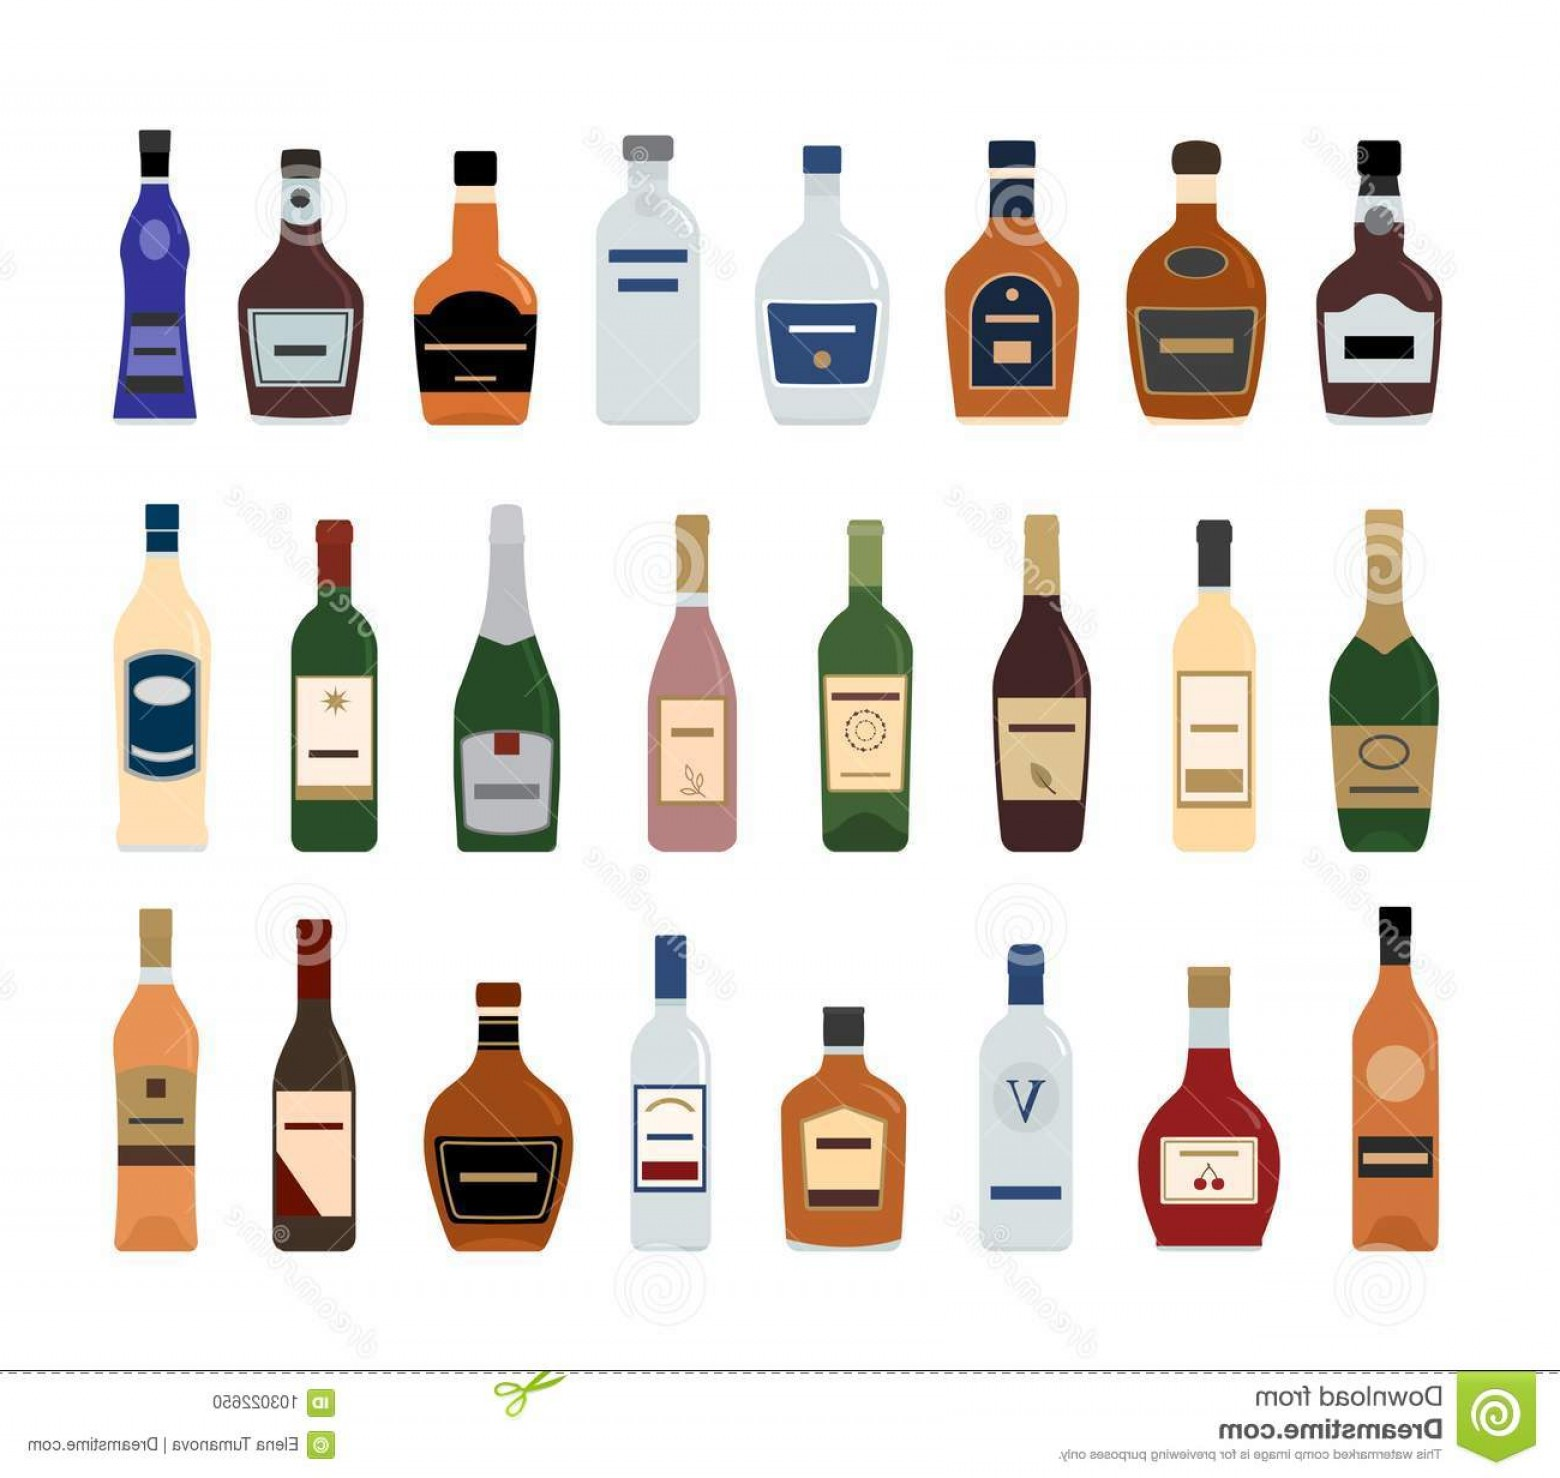 Booze Bottle Vector: Alcohol Bottle Icons White Background Large Vector Set Image